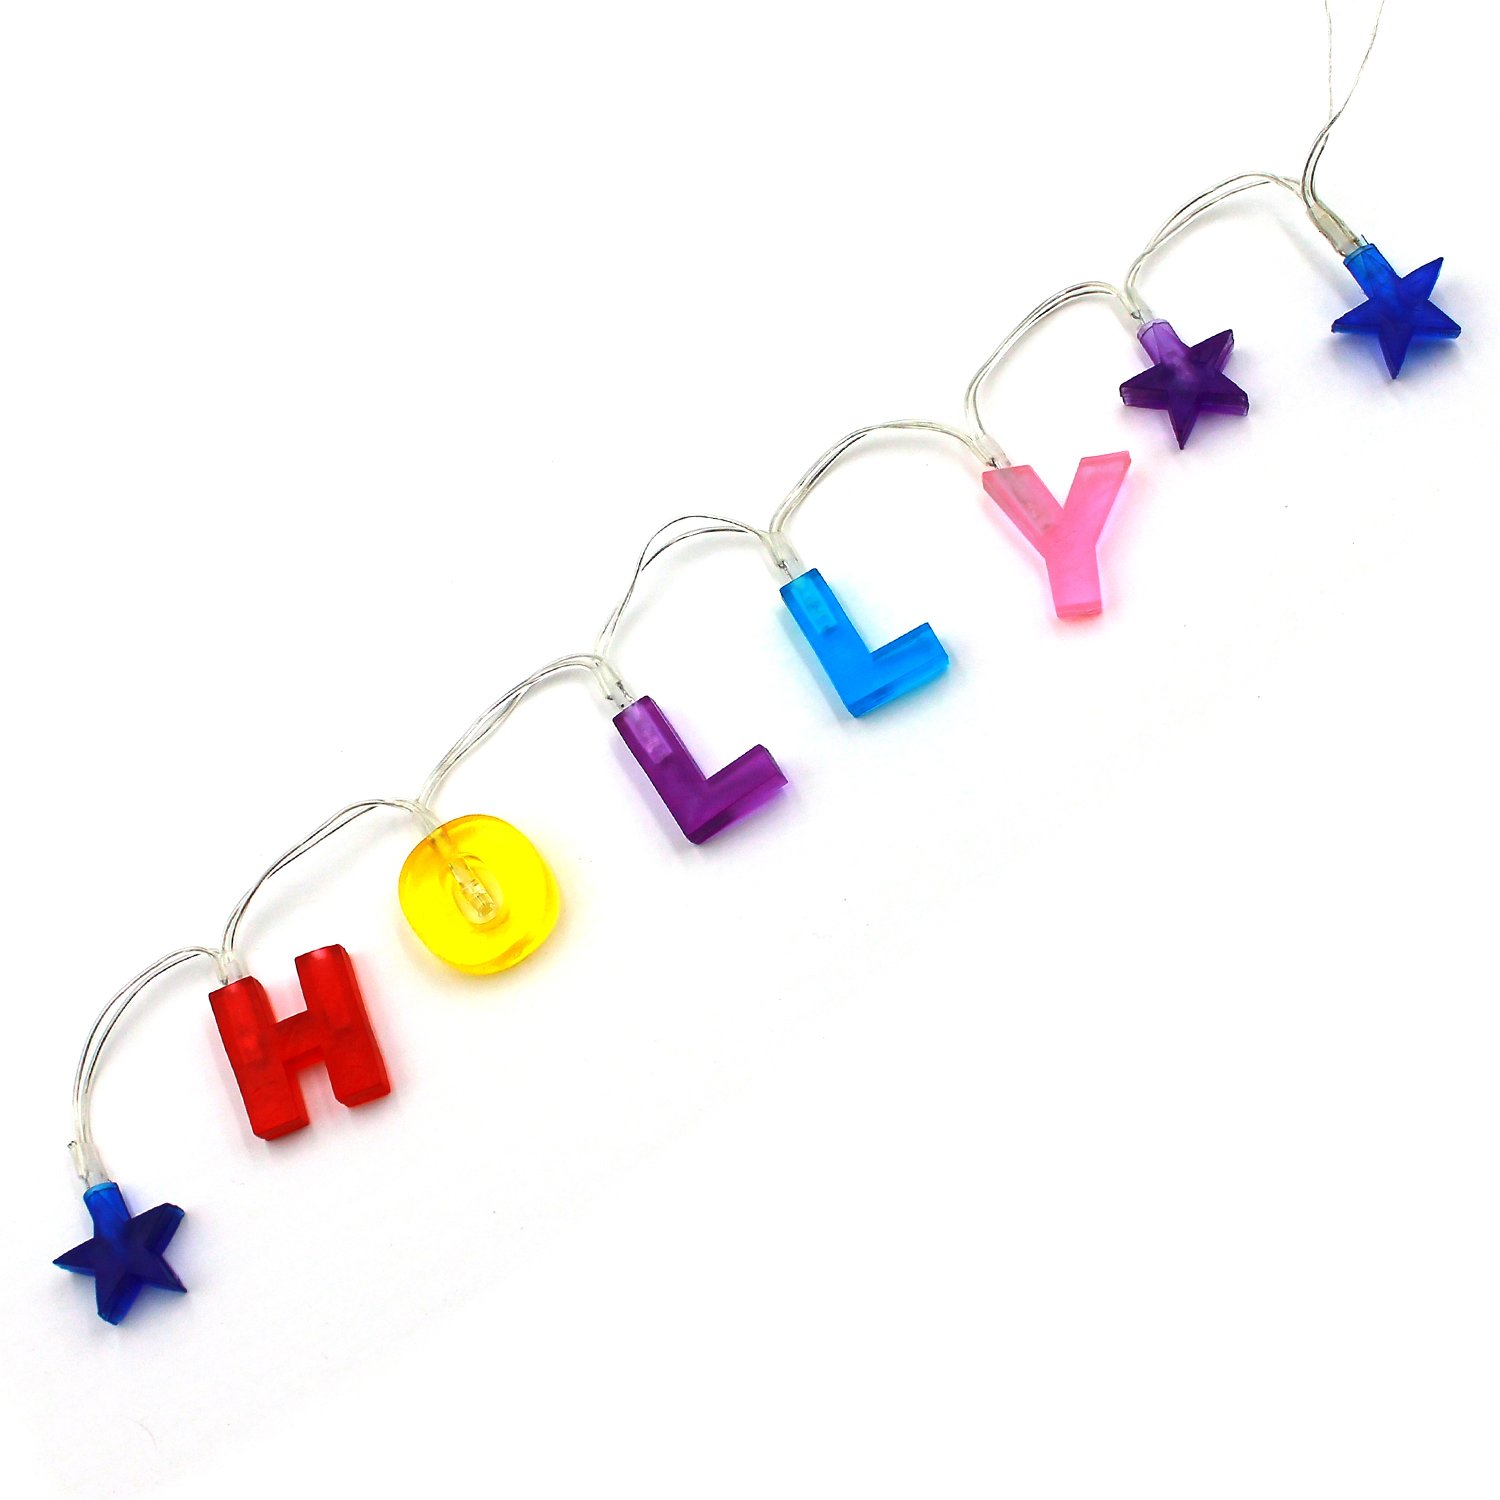 Custom Name Lights, Create Your Own Name Lights with Any 8 Letters, Colorful LED String Lights